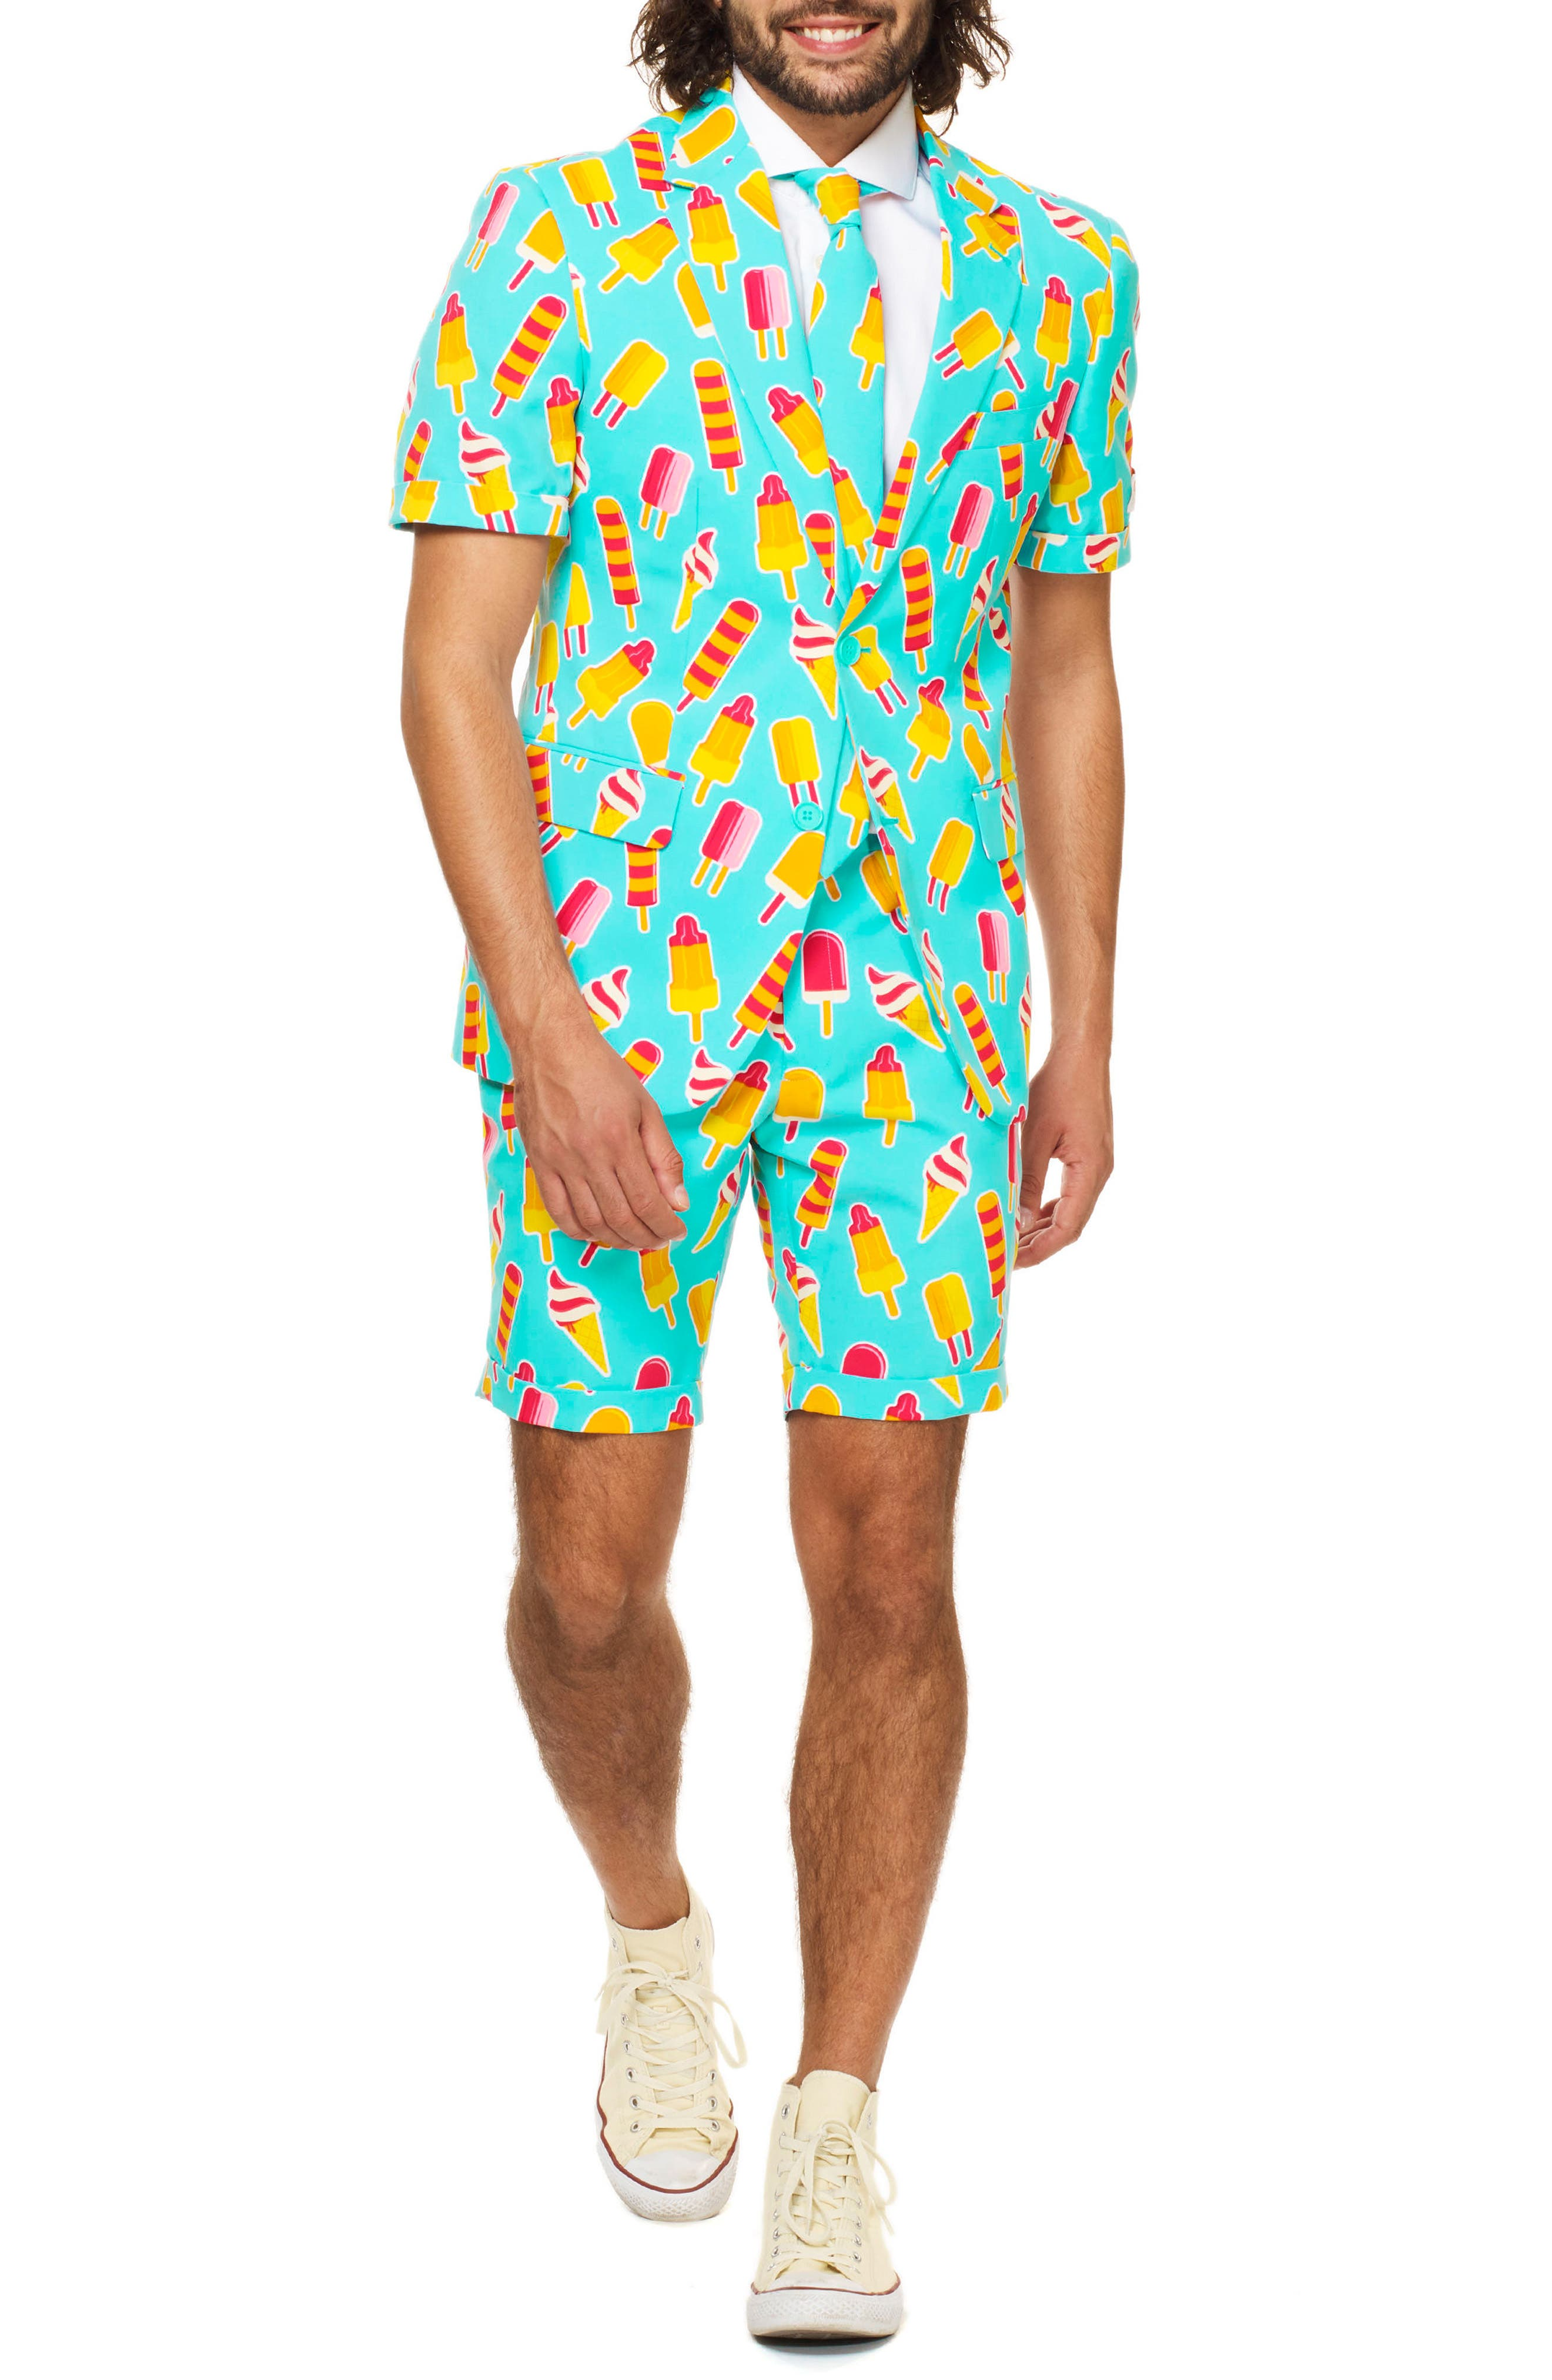 Alternate Image 1 Selected - OppoSuits Summer Cool Cones Trim Fit Two-Piece Short Suit with Tie